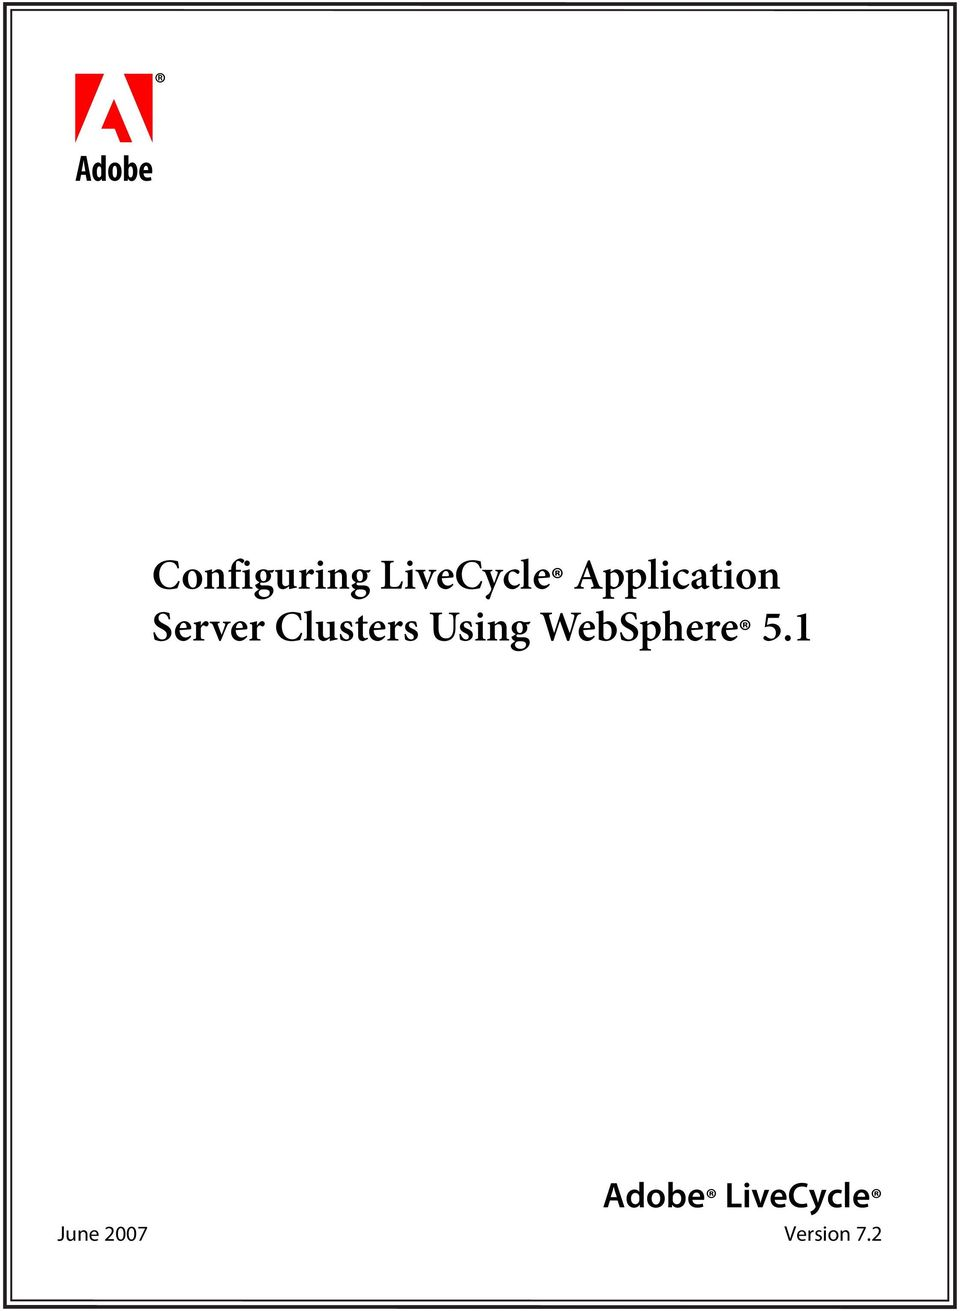 Using WebSphere 5.